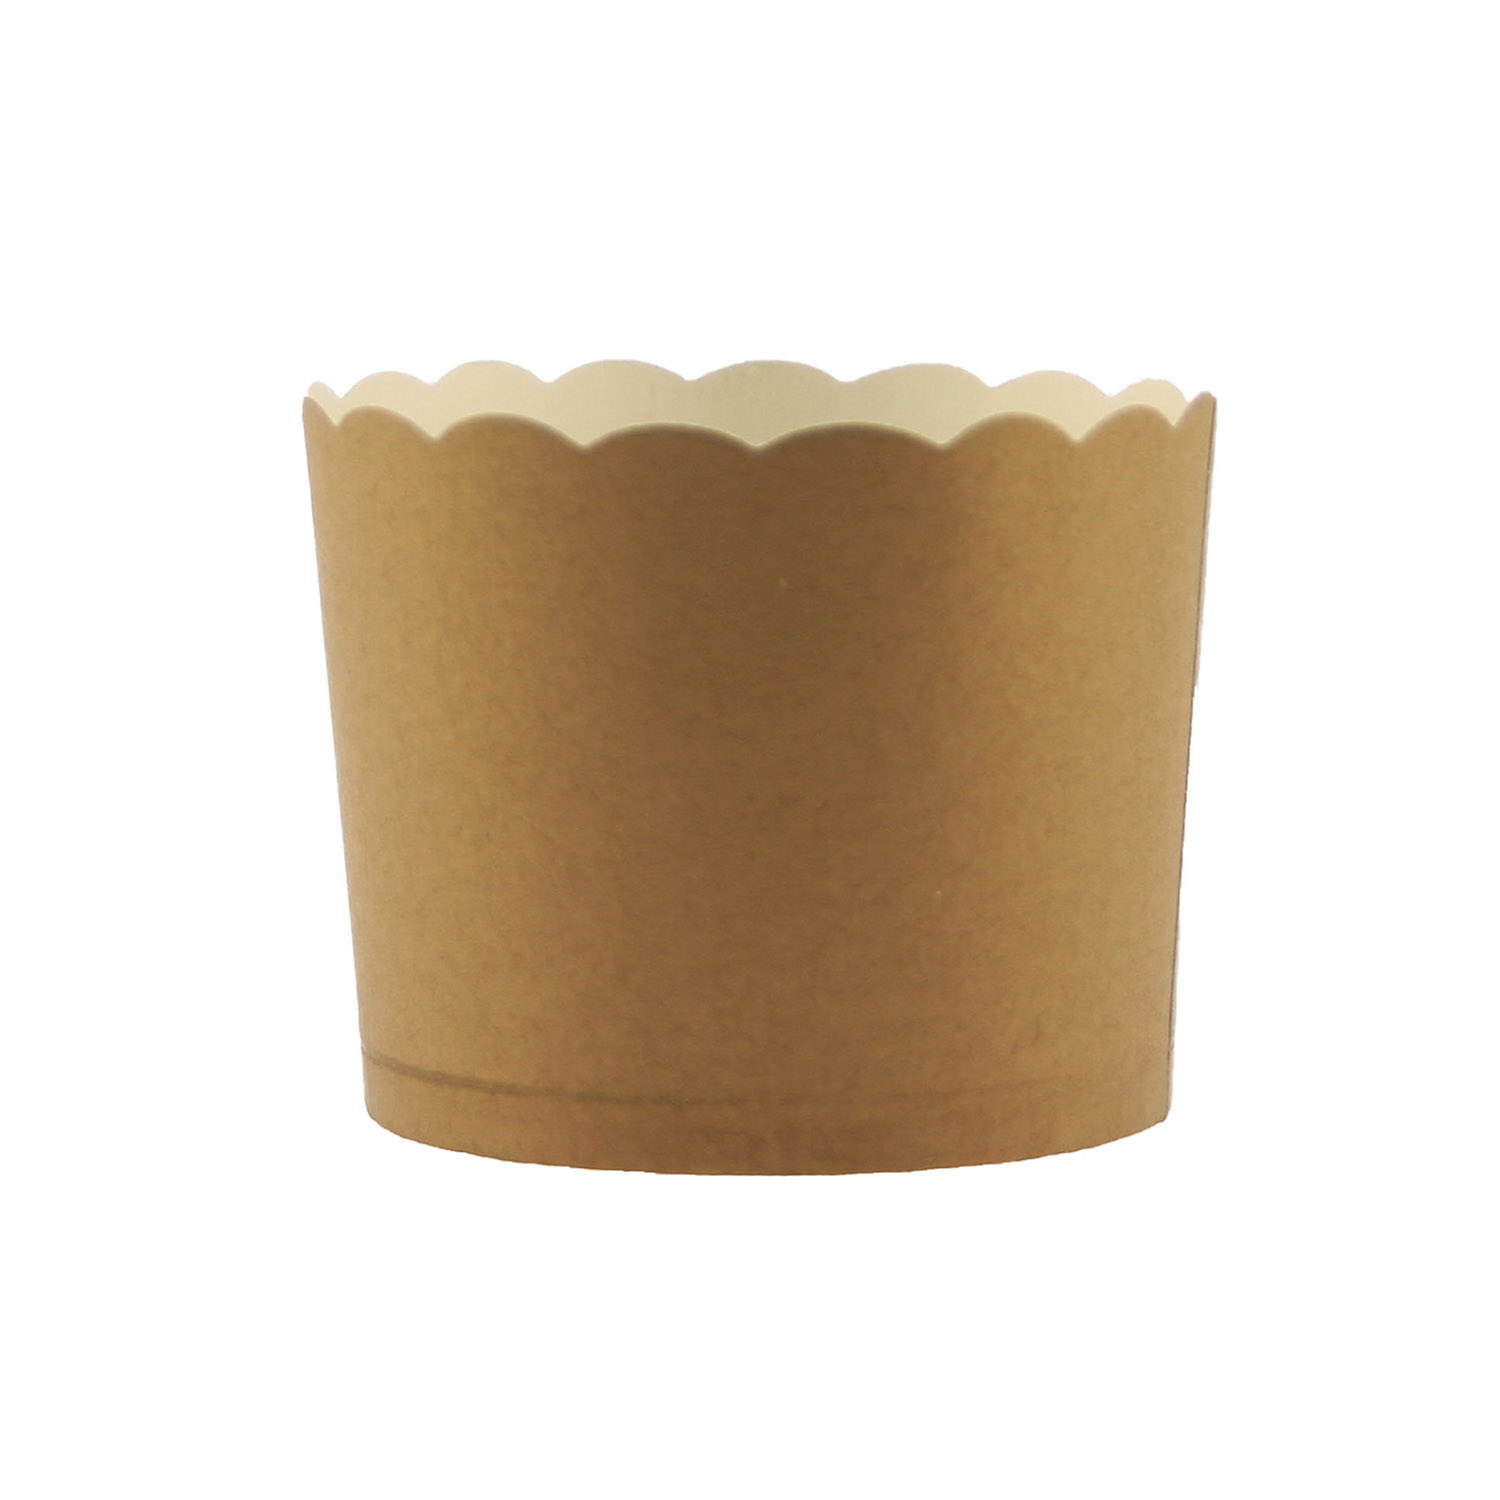 Gold Bake In Cups - Small